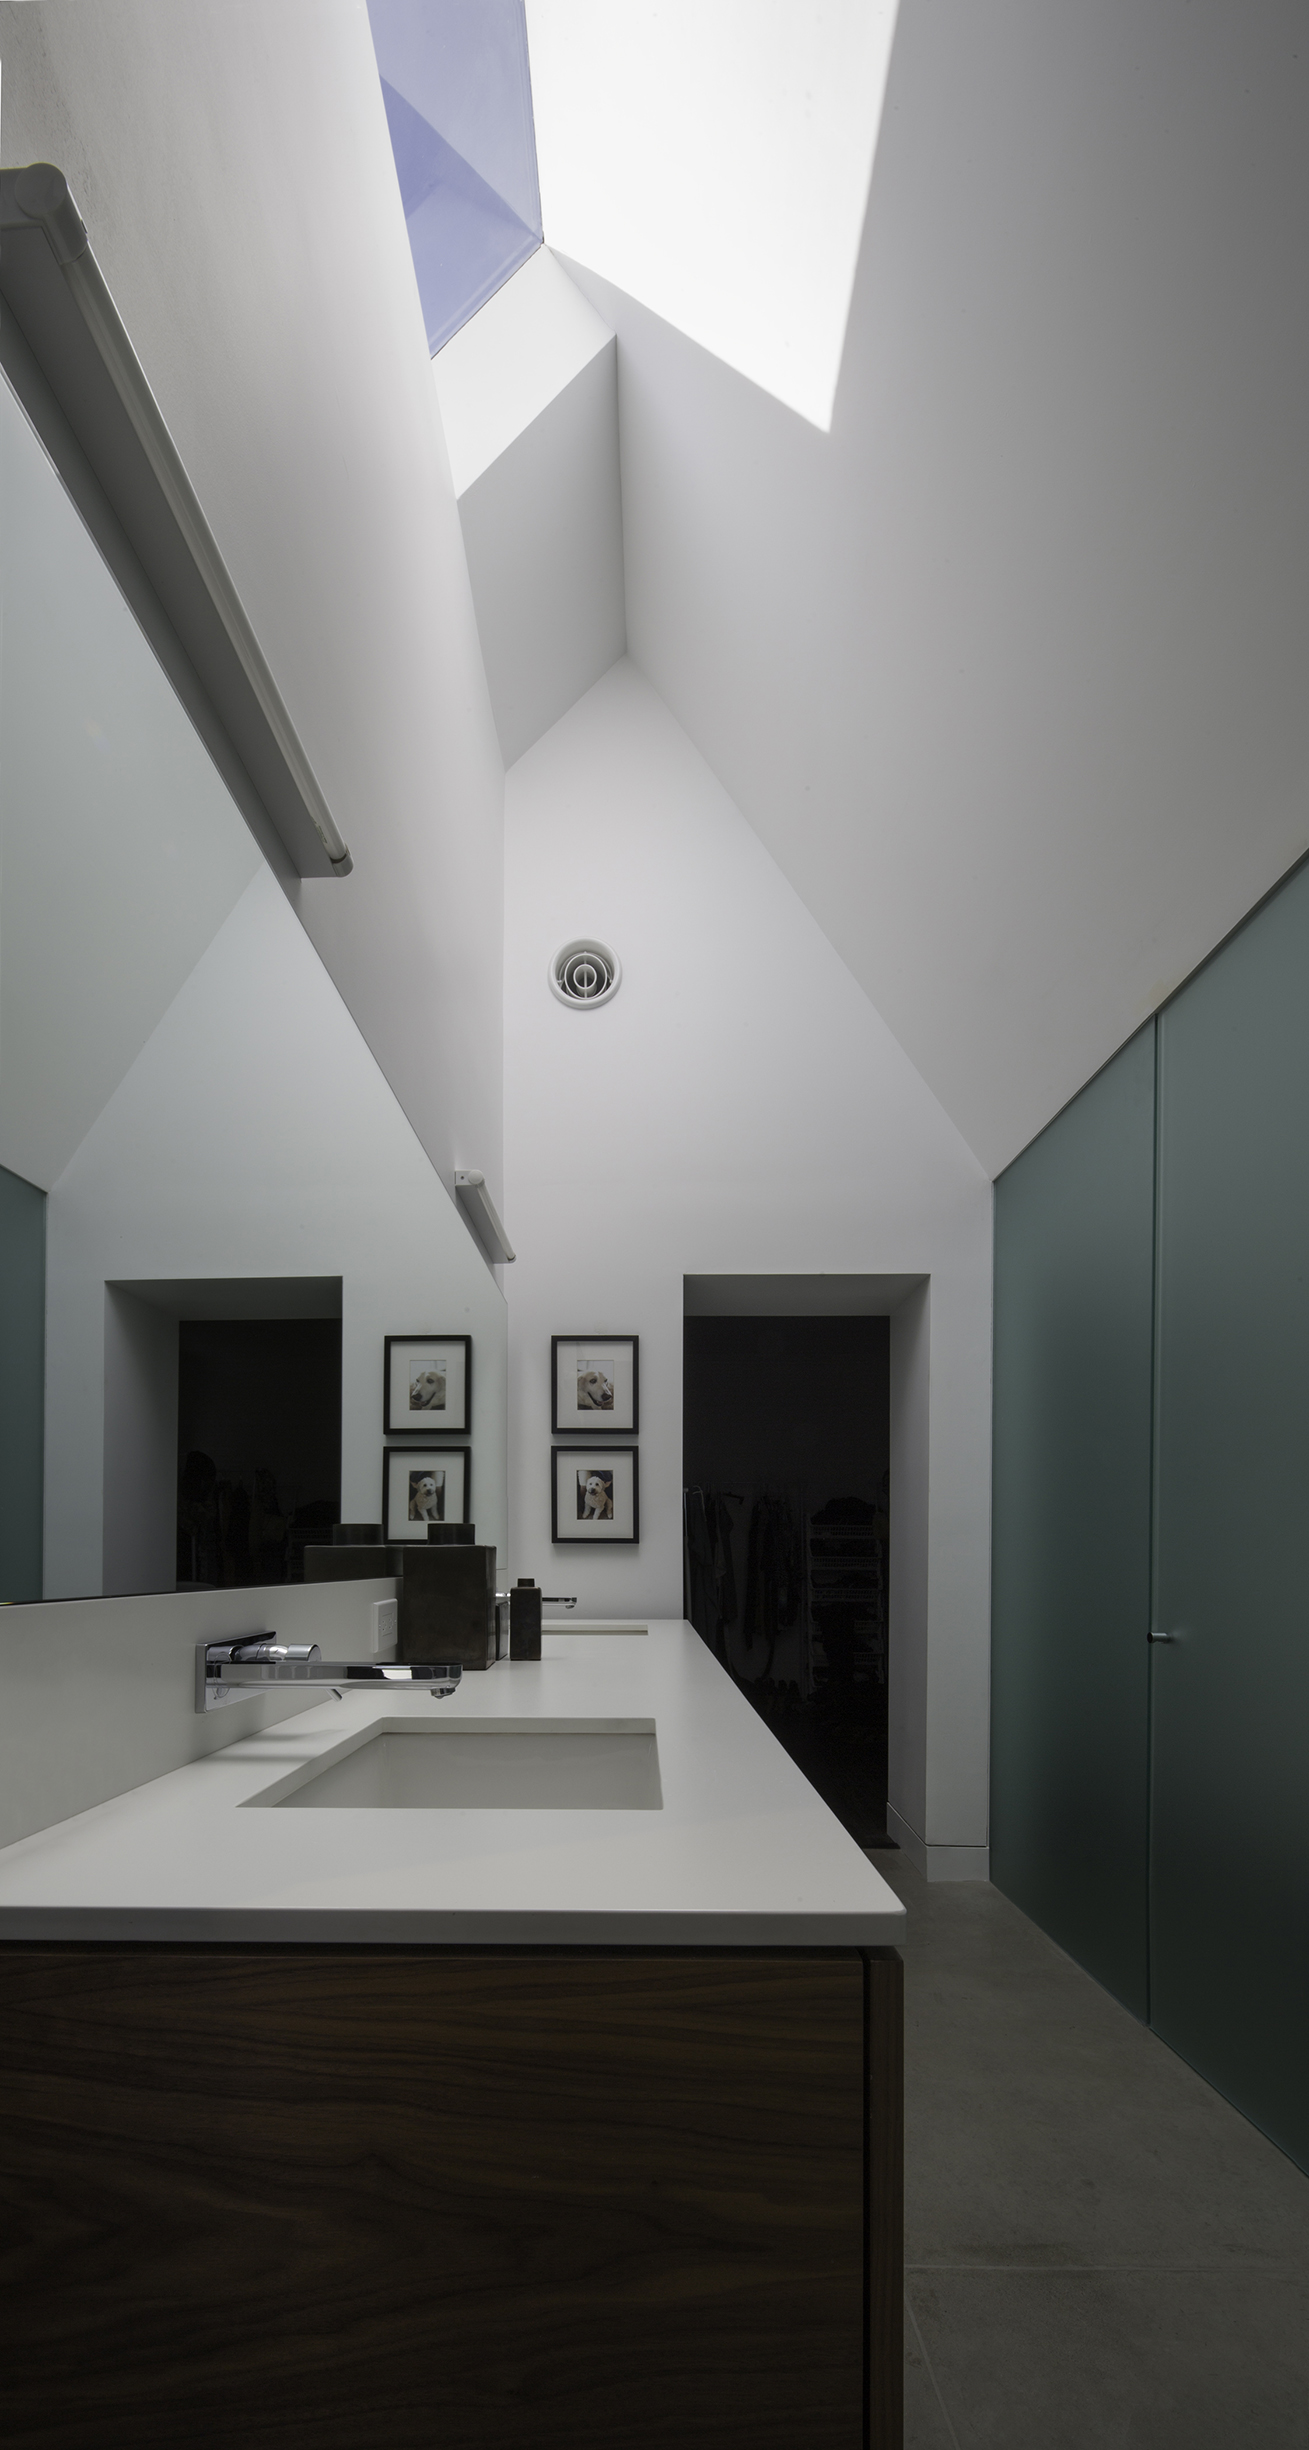 16 Chen + Suchart Studio LLC - Escobar Renovation Image